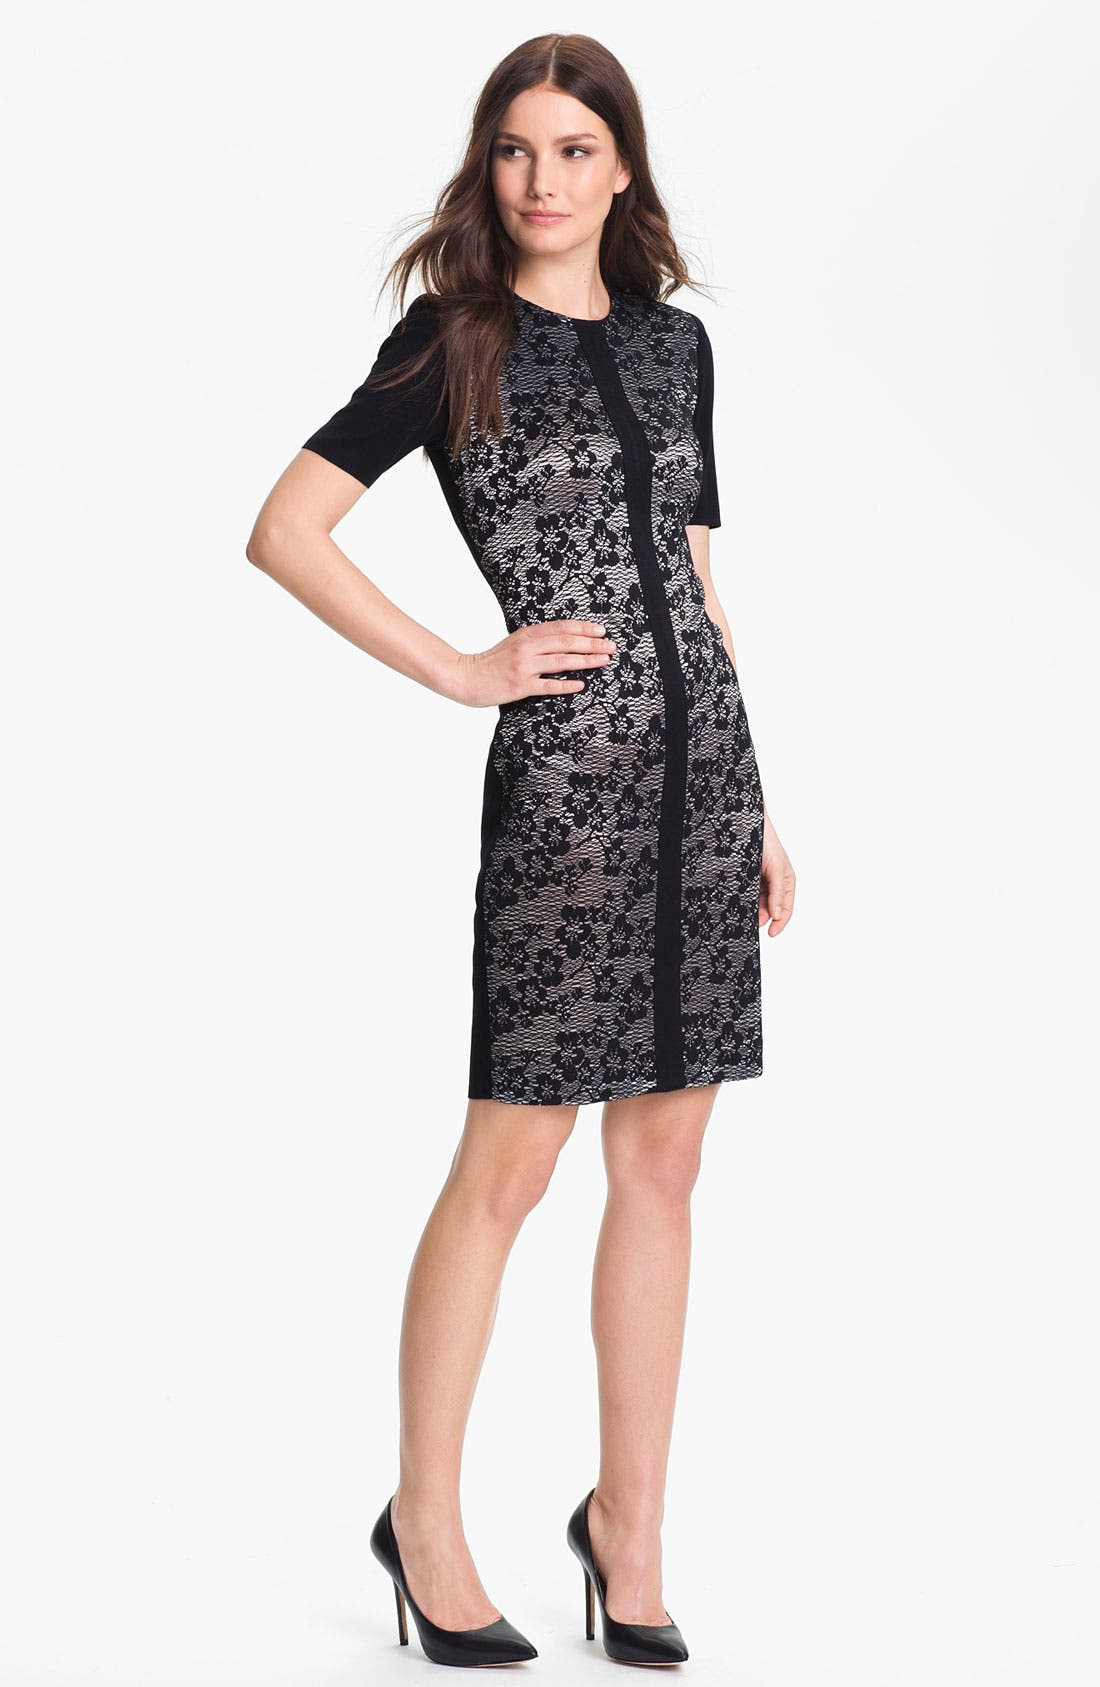 Alternate Image 1 Selected - Exclusively Misook 'Eliza' Lace Front Dress (Petite)